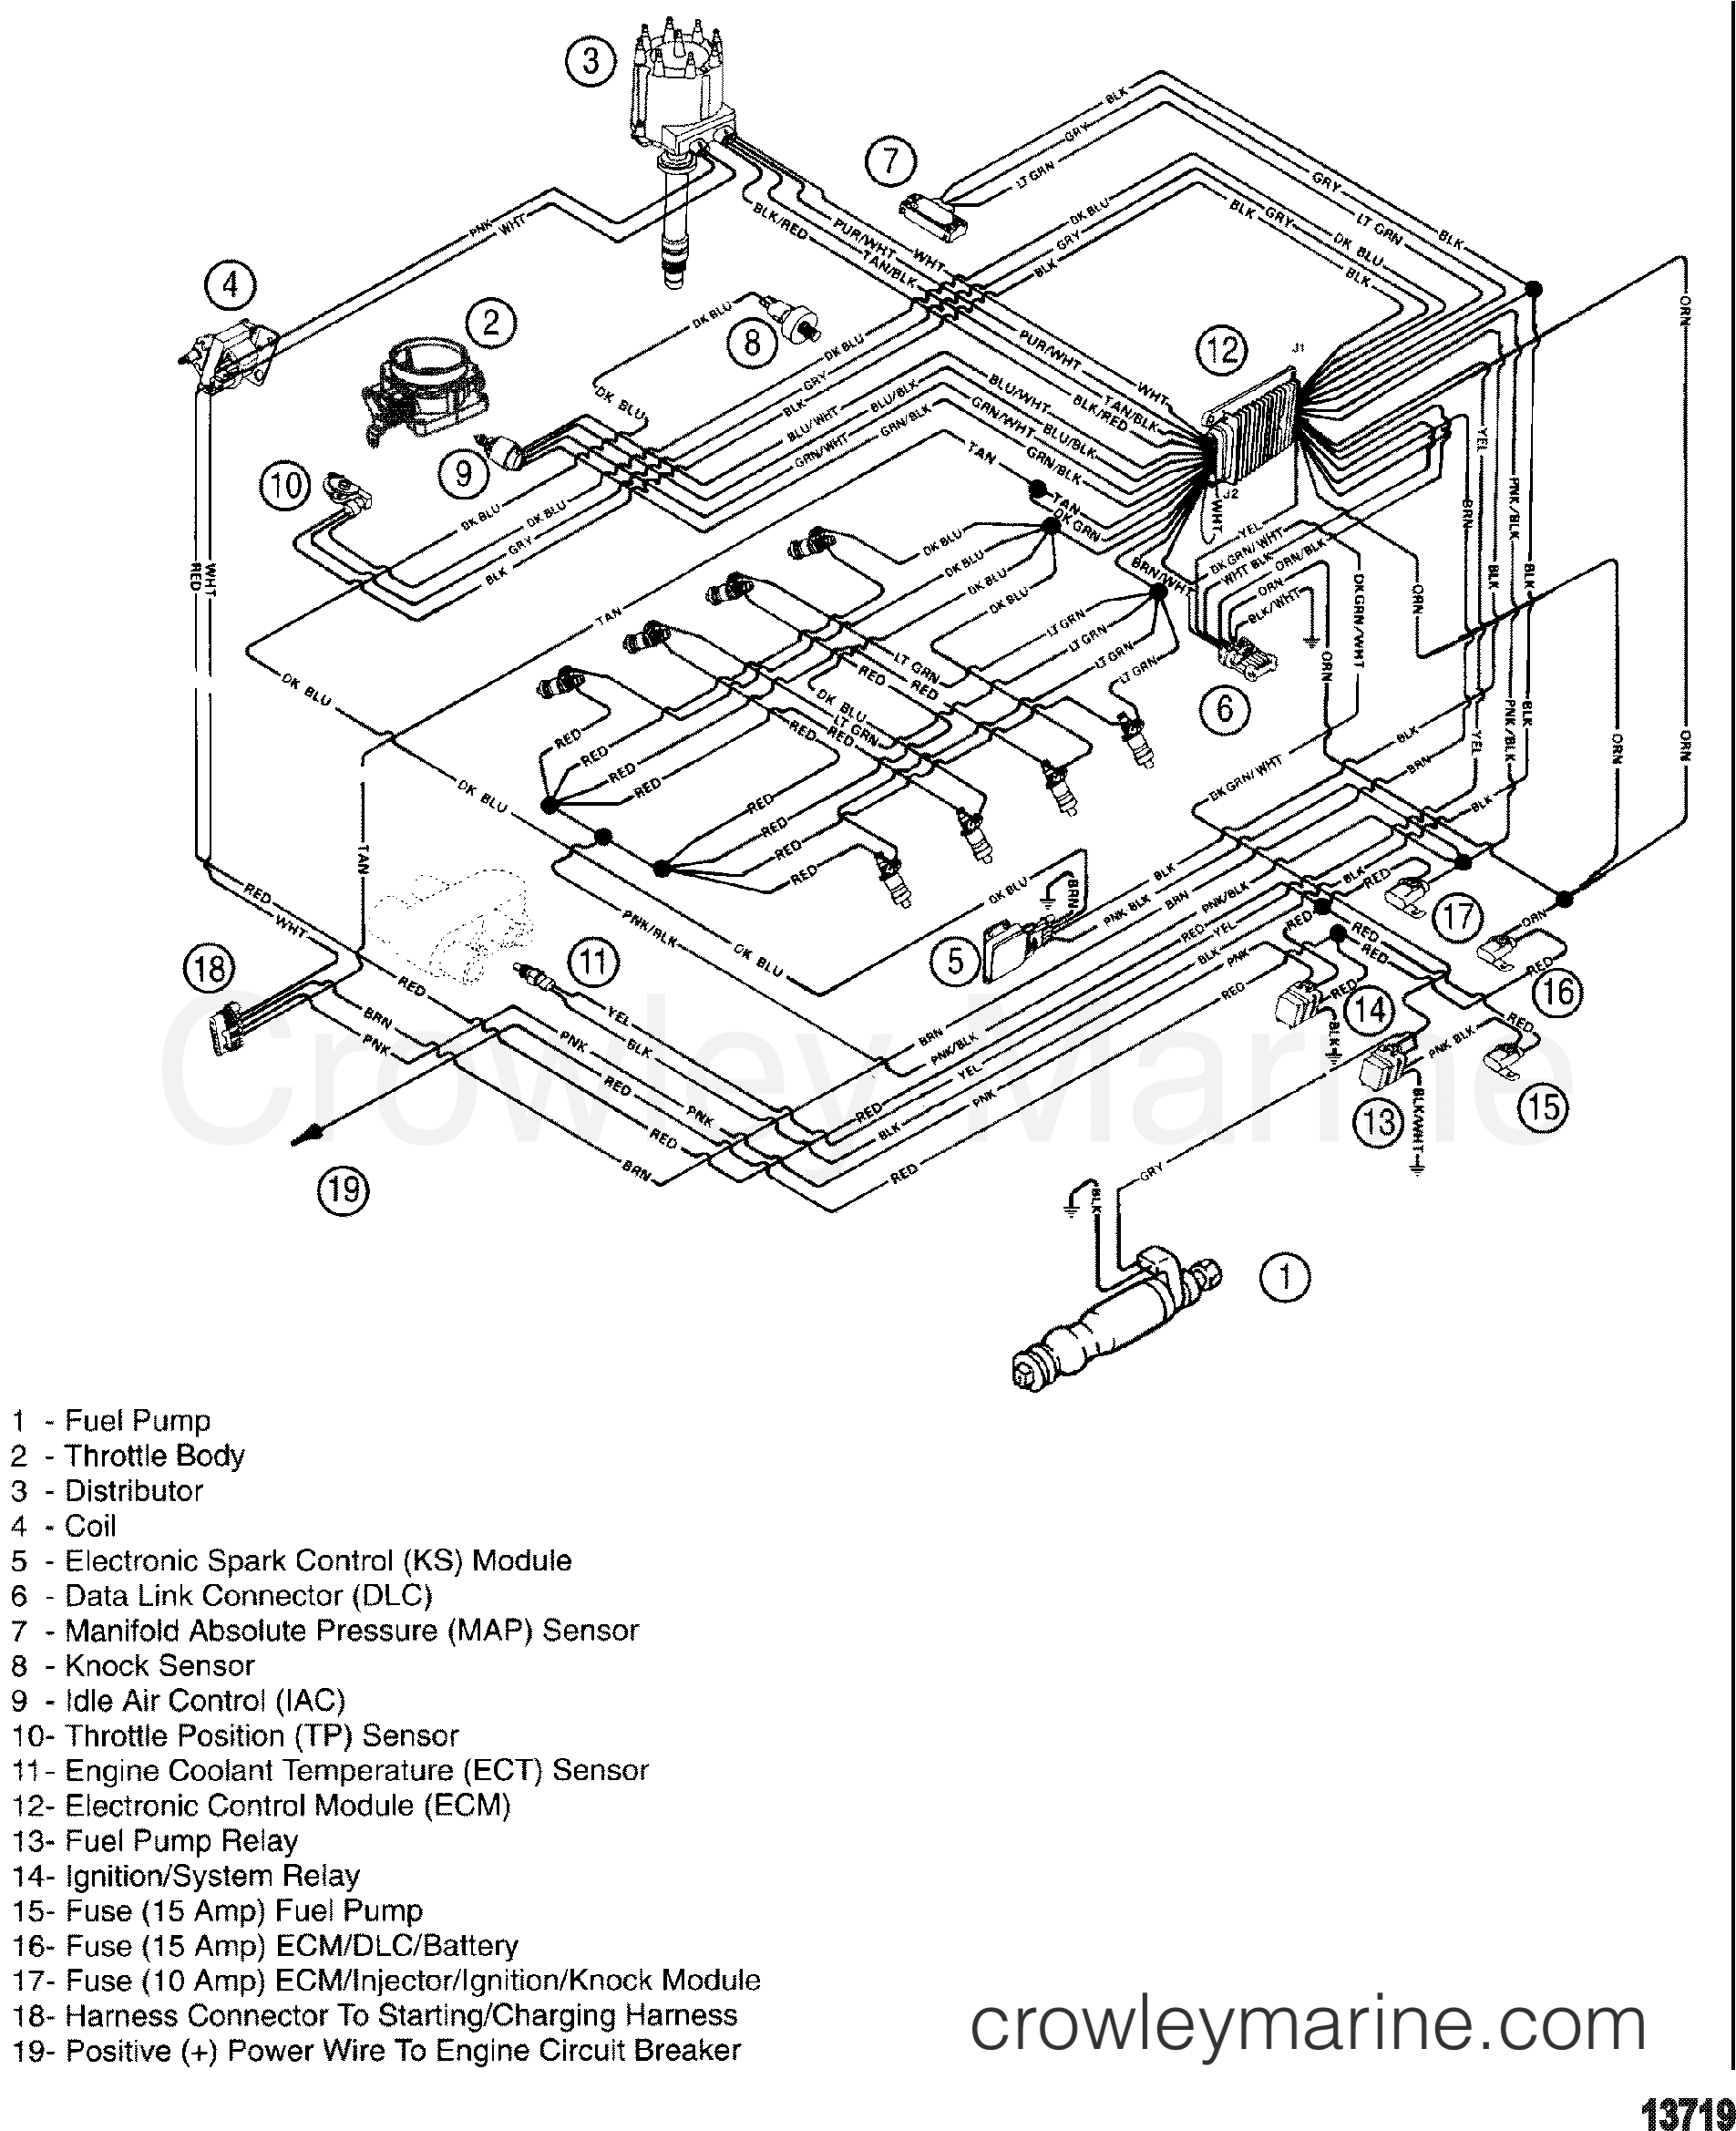 hight resolution of mercruiser 350 wiring diagram wiring diagram schematics rh 3 2 schlaglicht regional de mercruiser 350 starter wiring diagram mercruiser 350 alternator